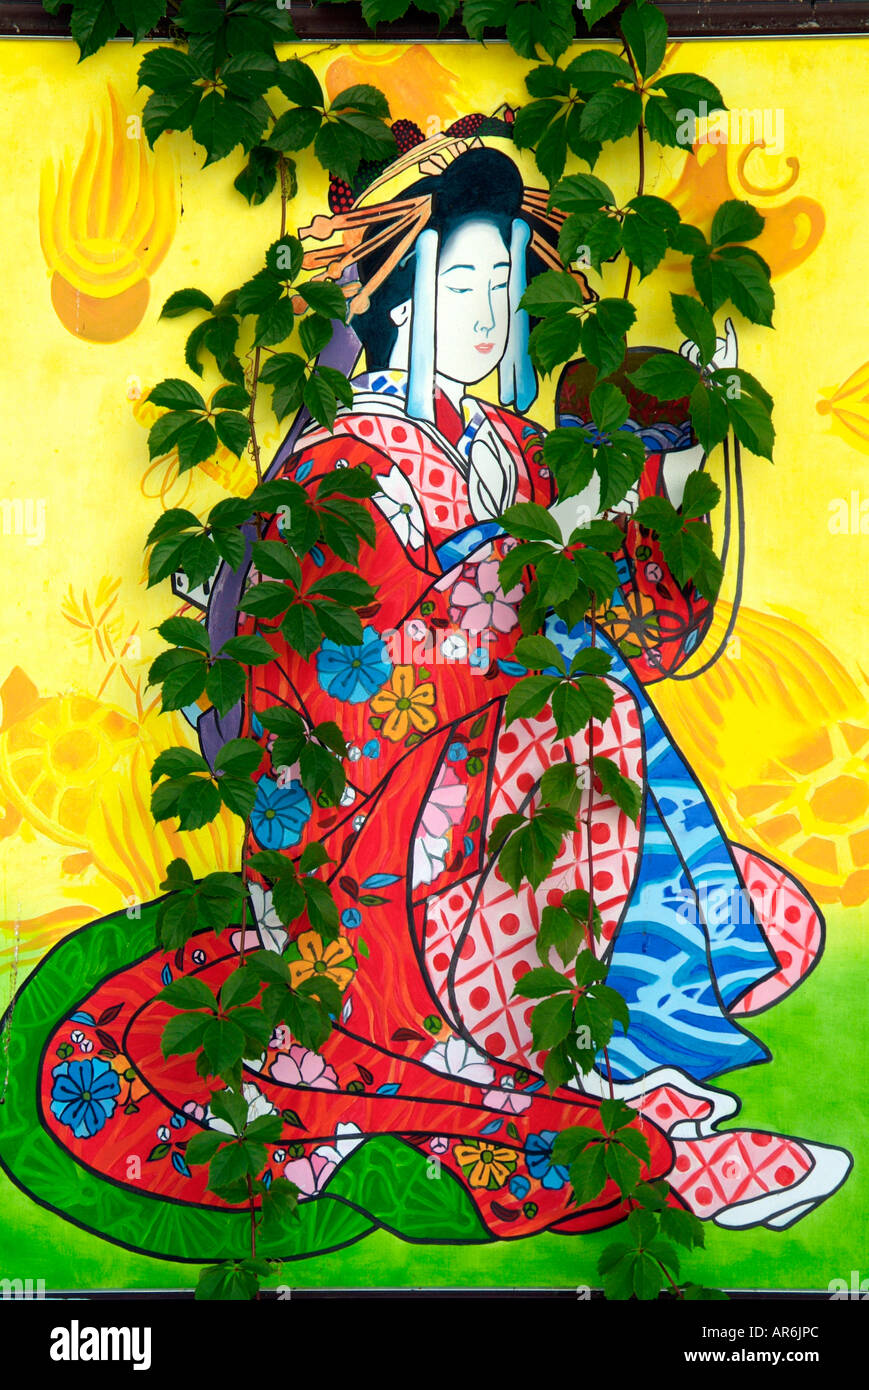 Geisha Japan Japanese Wall Painting Kimono Plant Growing Over Reveal